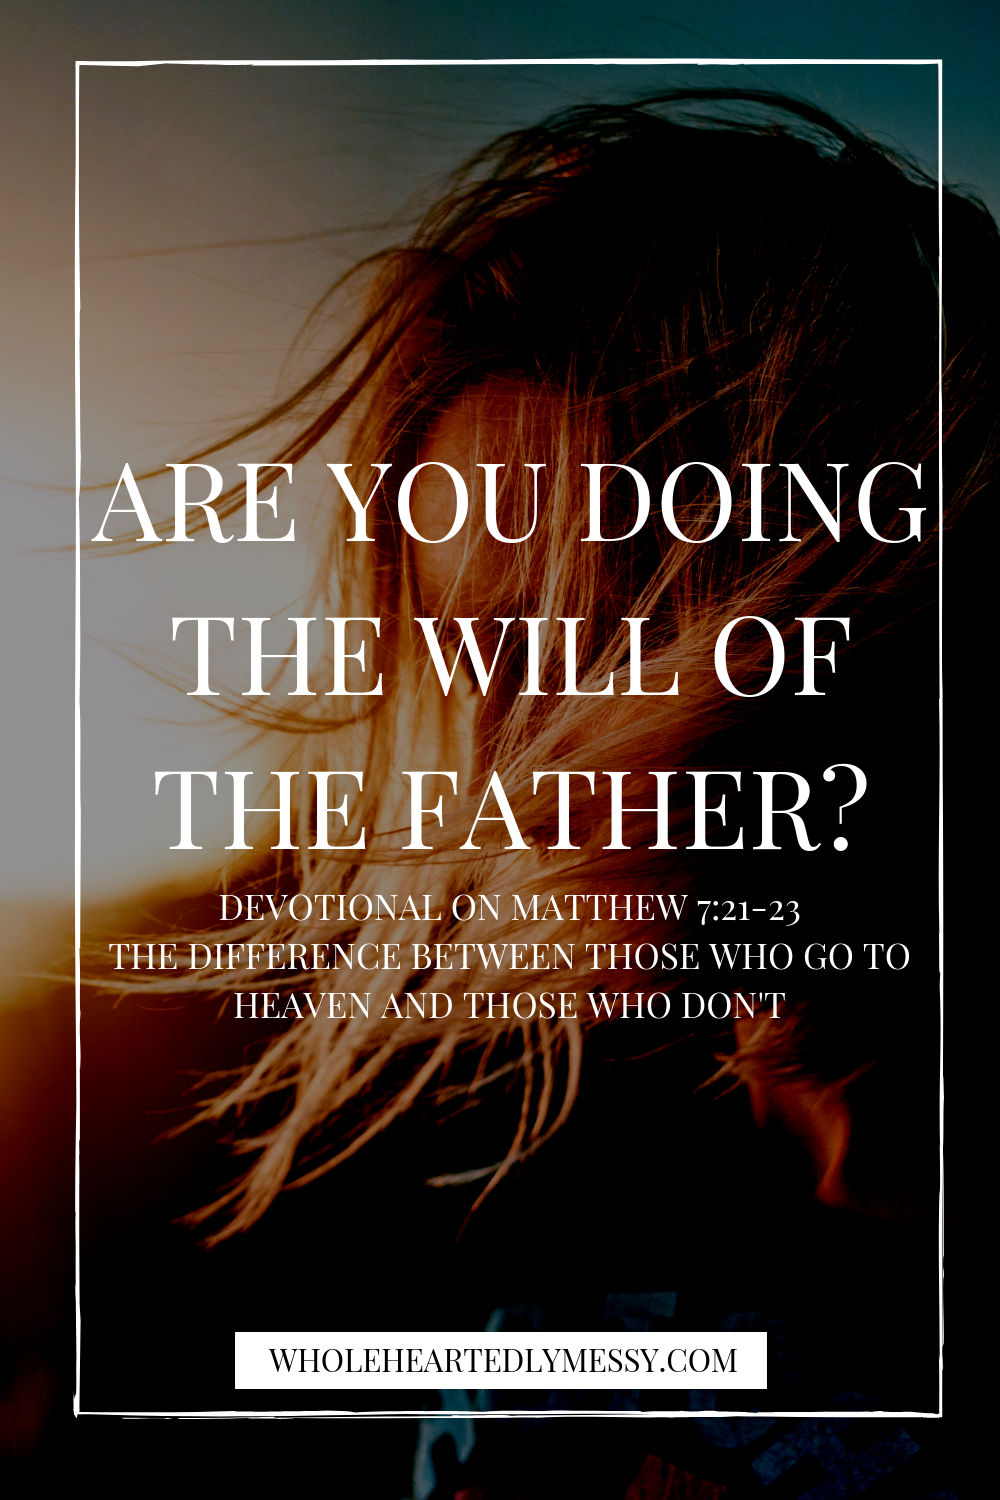 ARE YOU DOING THE WILL OF THE FATHER?